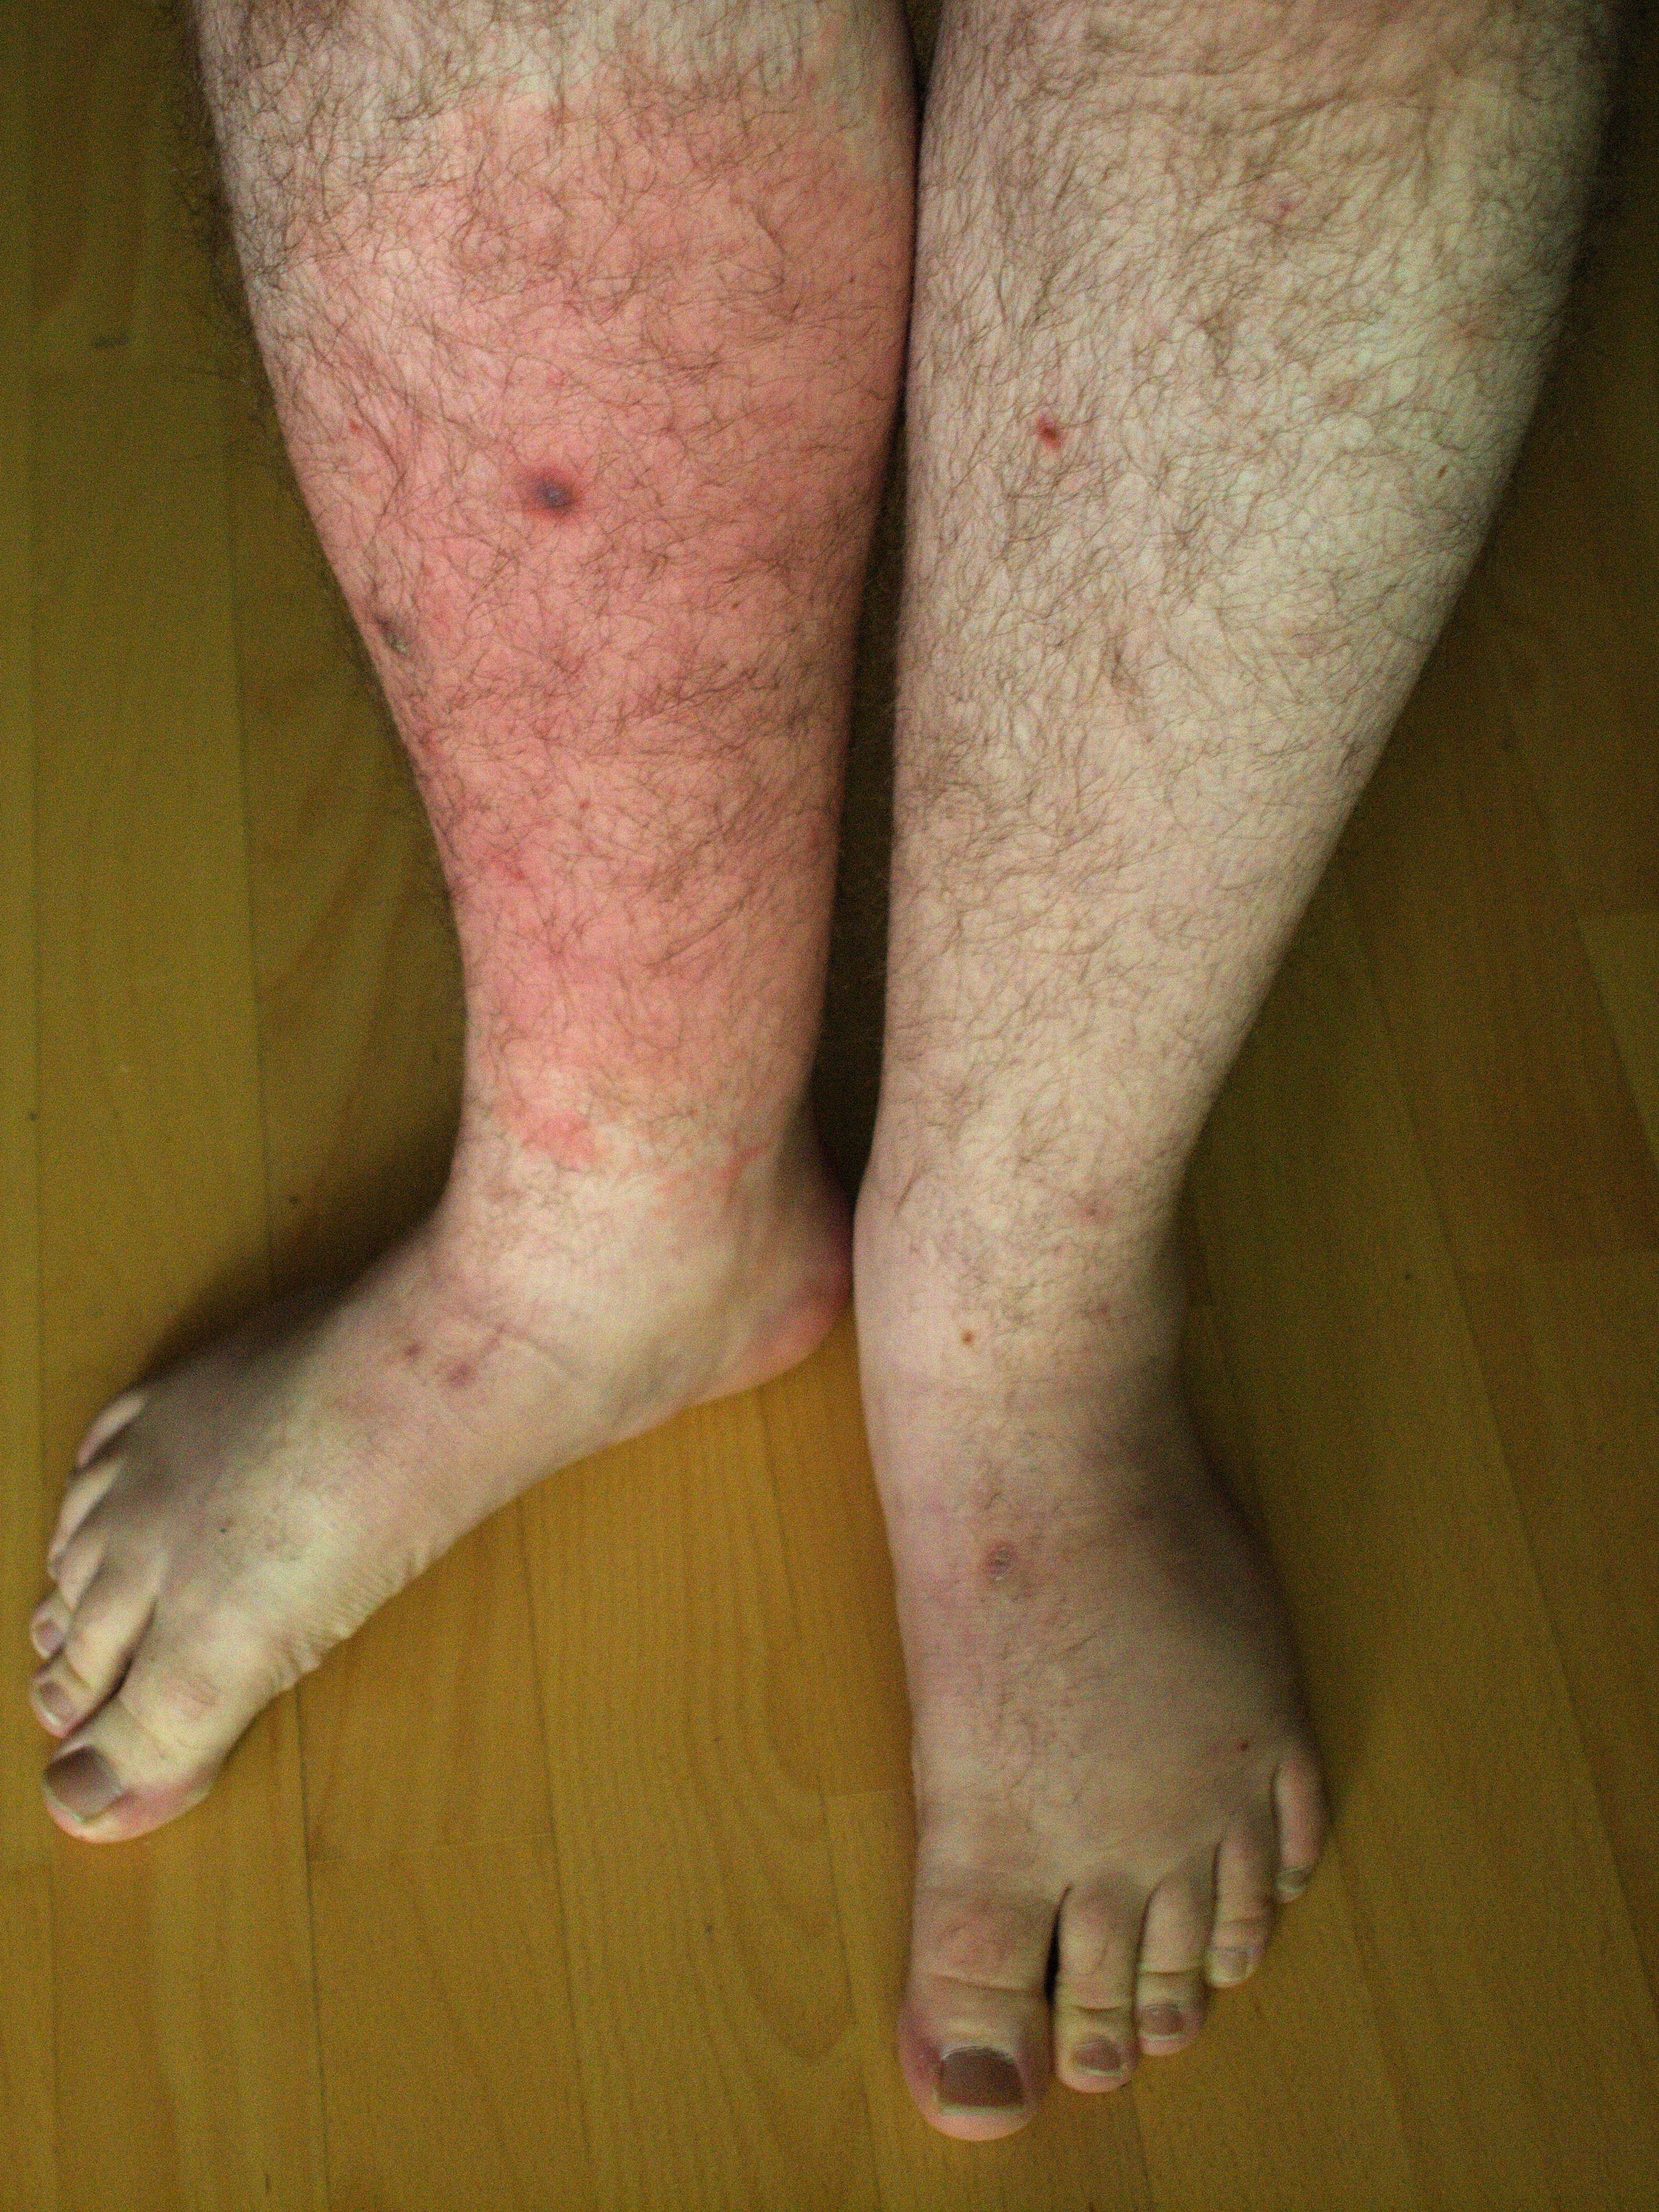 How to treat erysipelatous foot inflammation, face, hands, lower leg( disease of erysipelas)